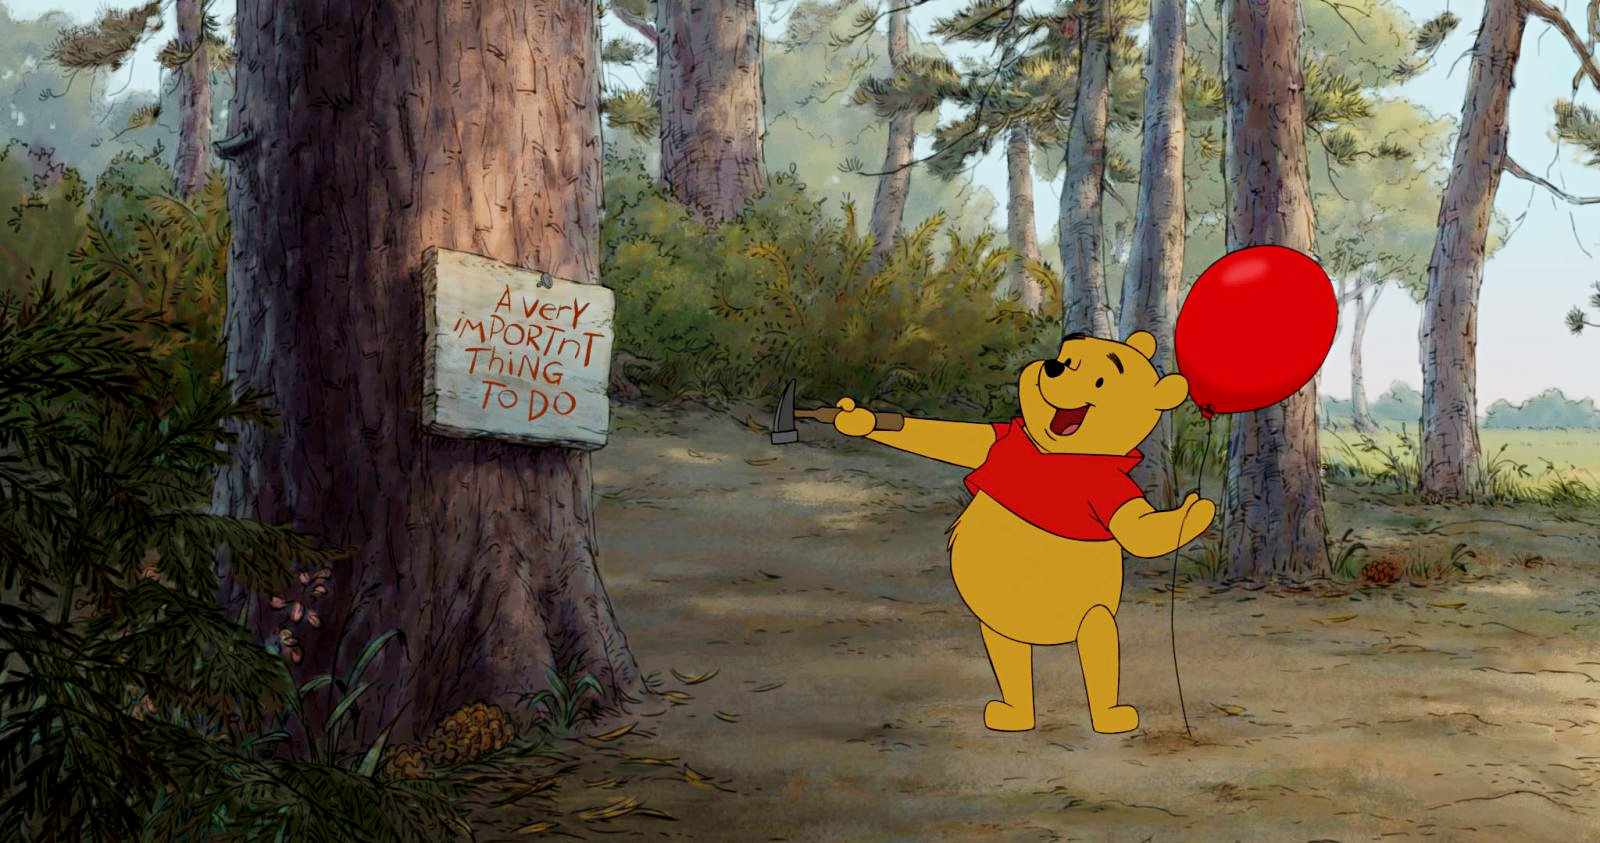 Charming A Scene From Walt Disney Picturesu0027 Winnie The Pooh (2011)